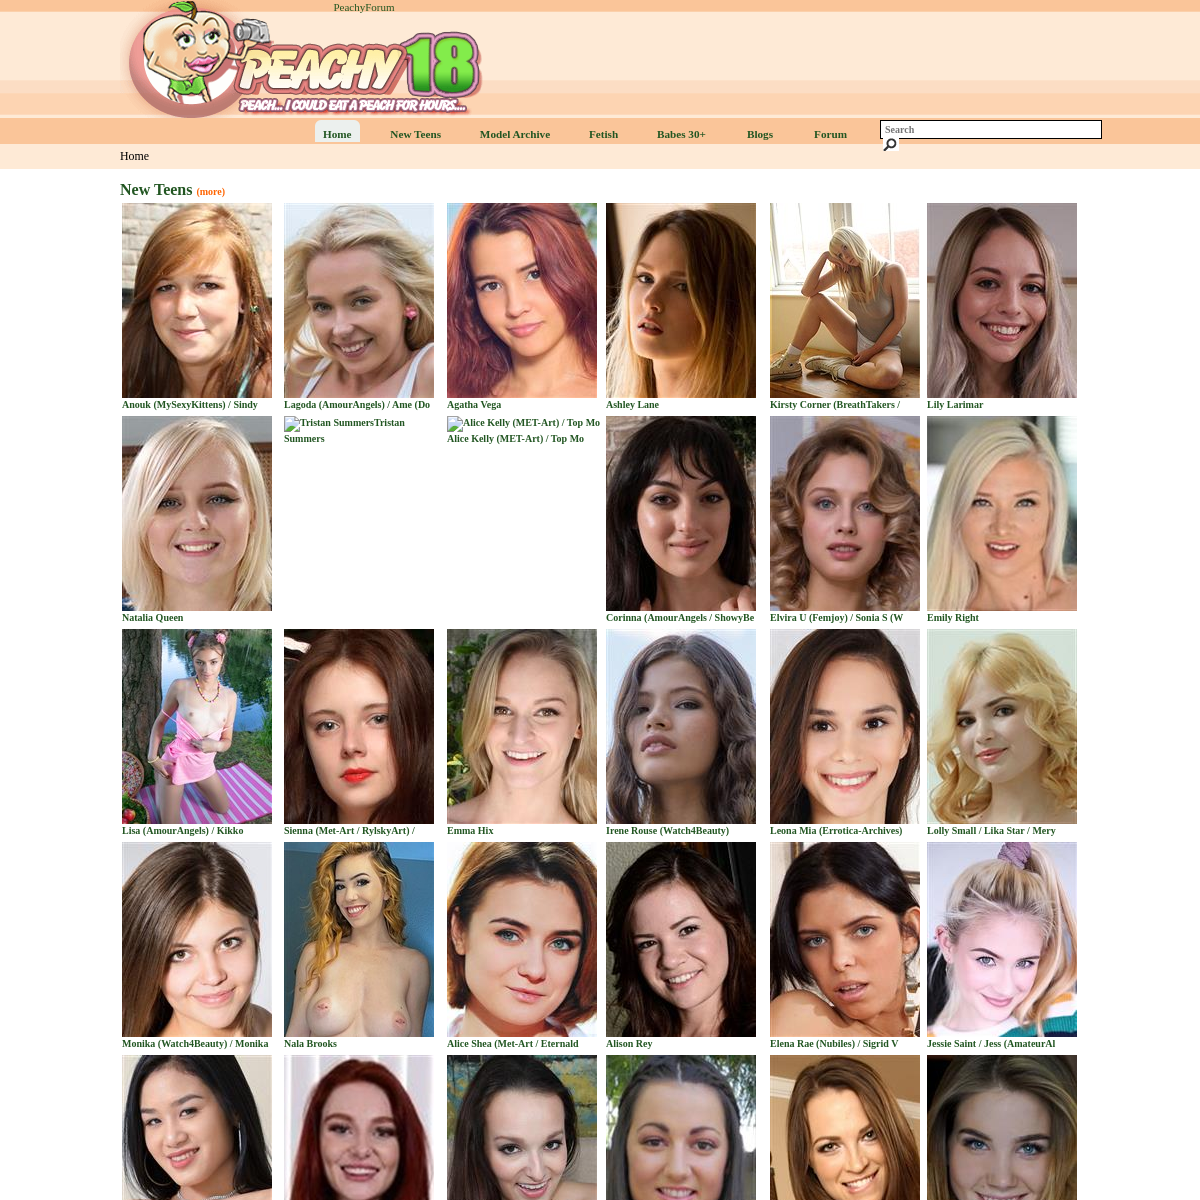 A complete backup of www.www.peachy18.com